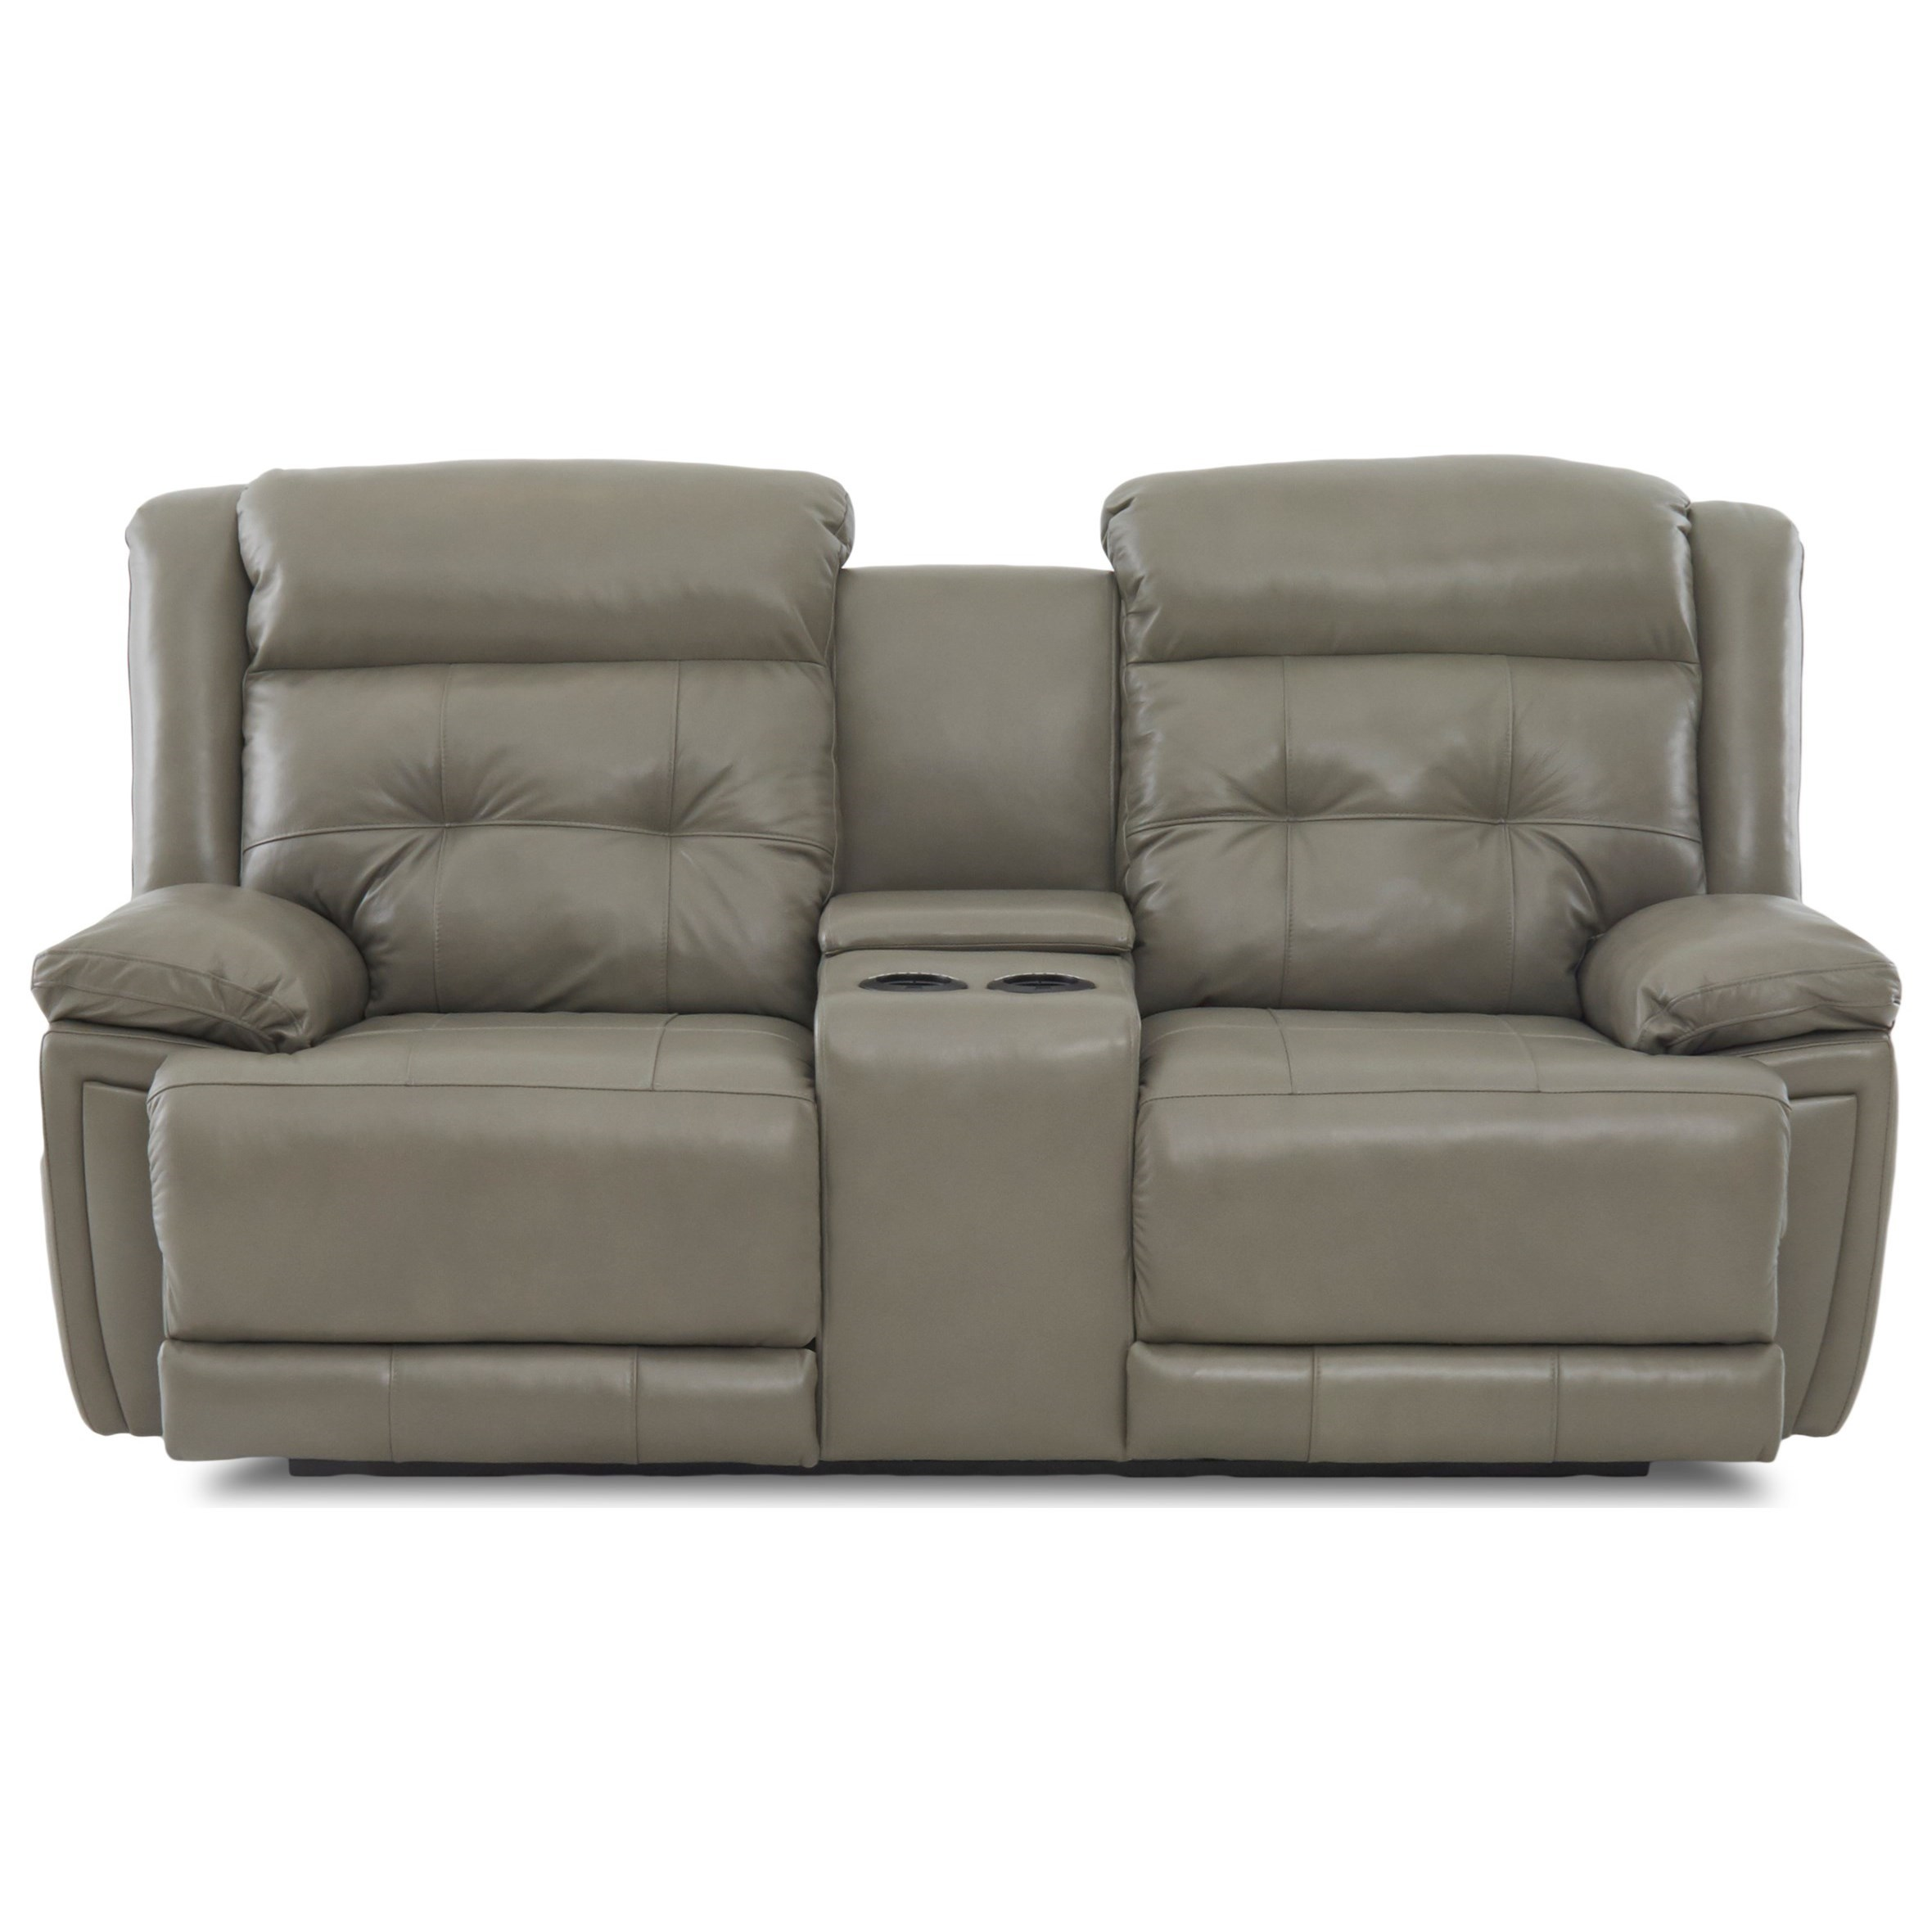 Casual Power Reclining Console Loveseat with Power Headrest and USB Port